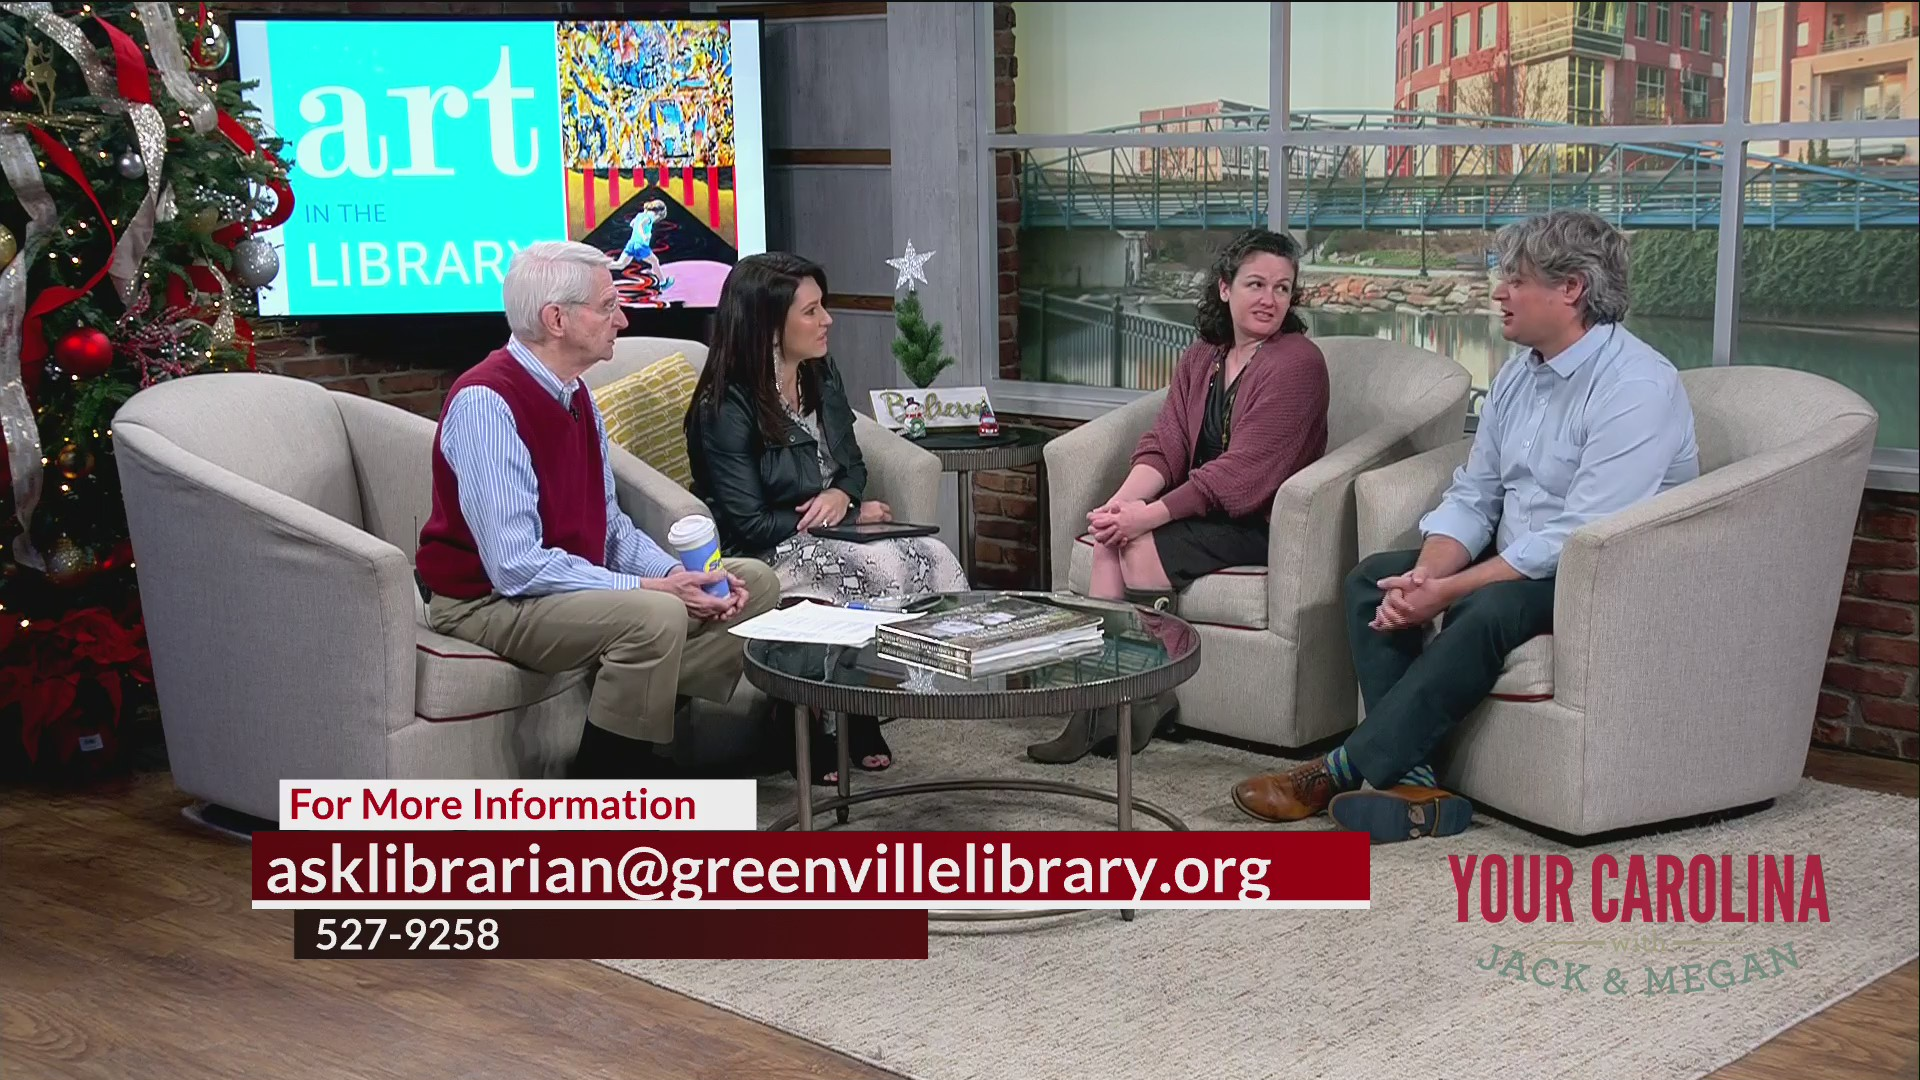 Art in the Library Exhibit & Call for Local Artists